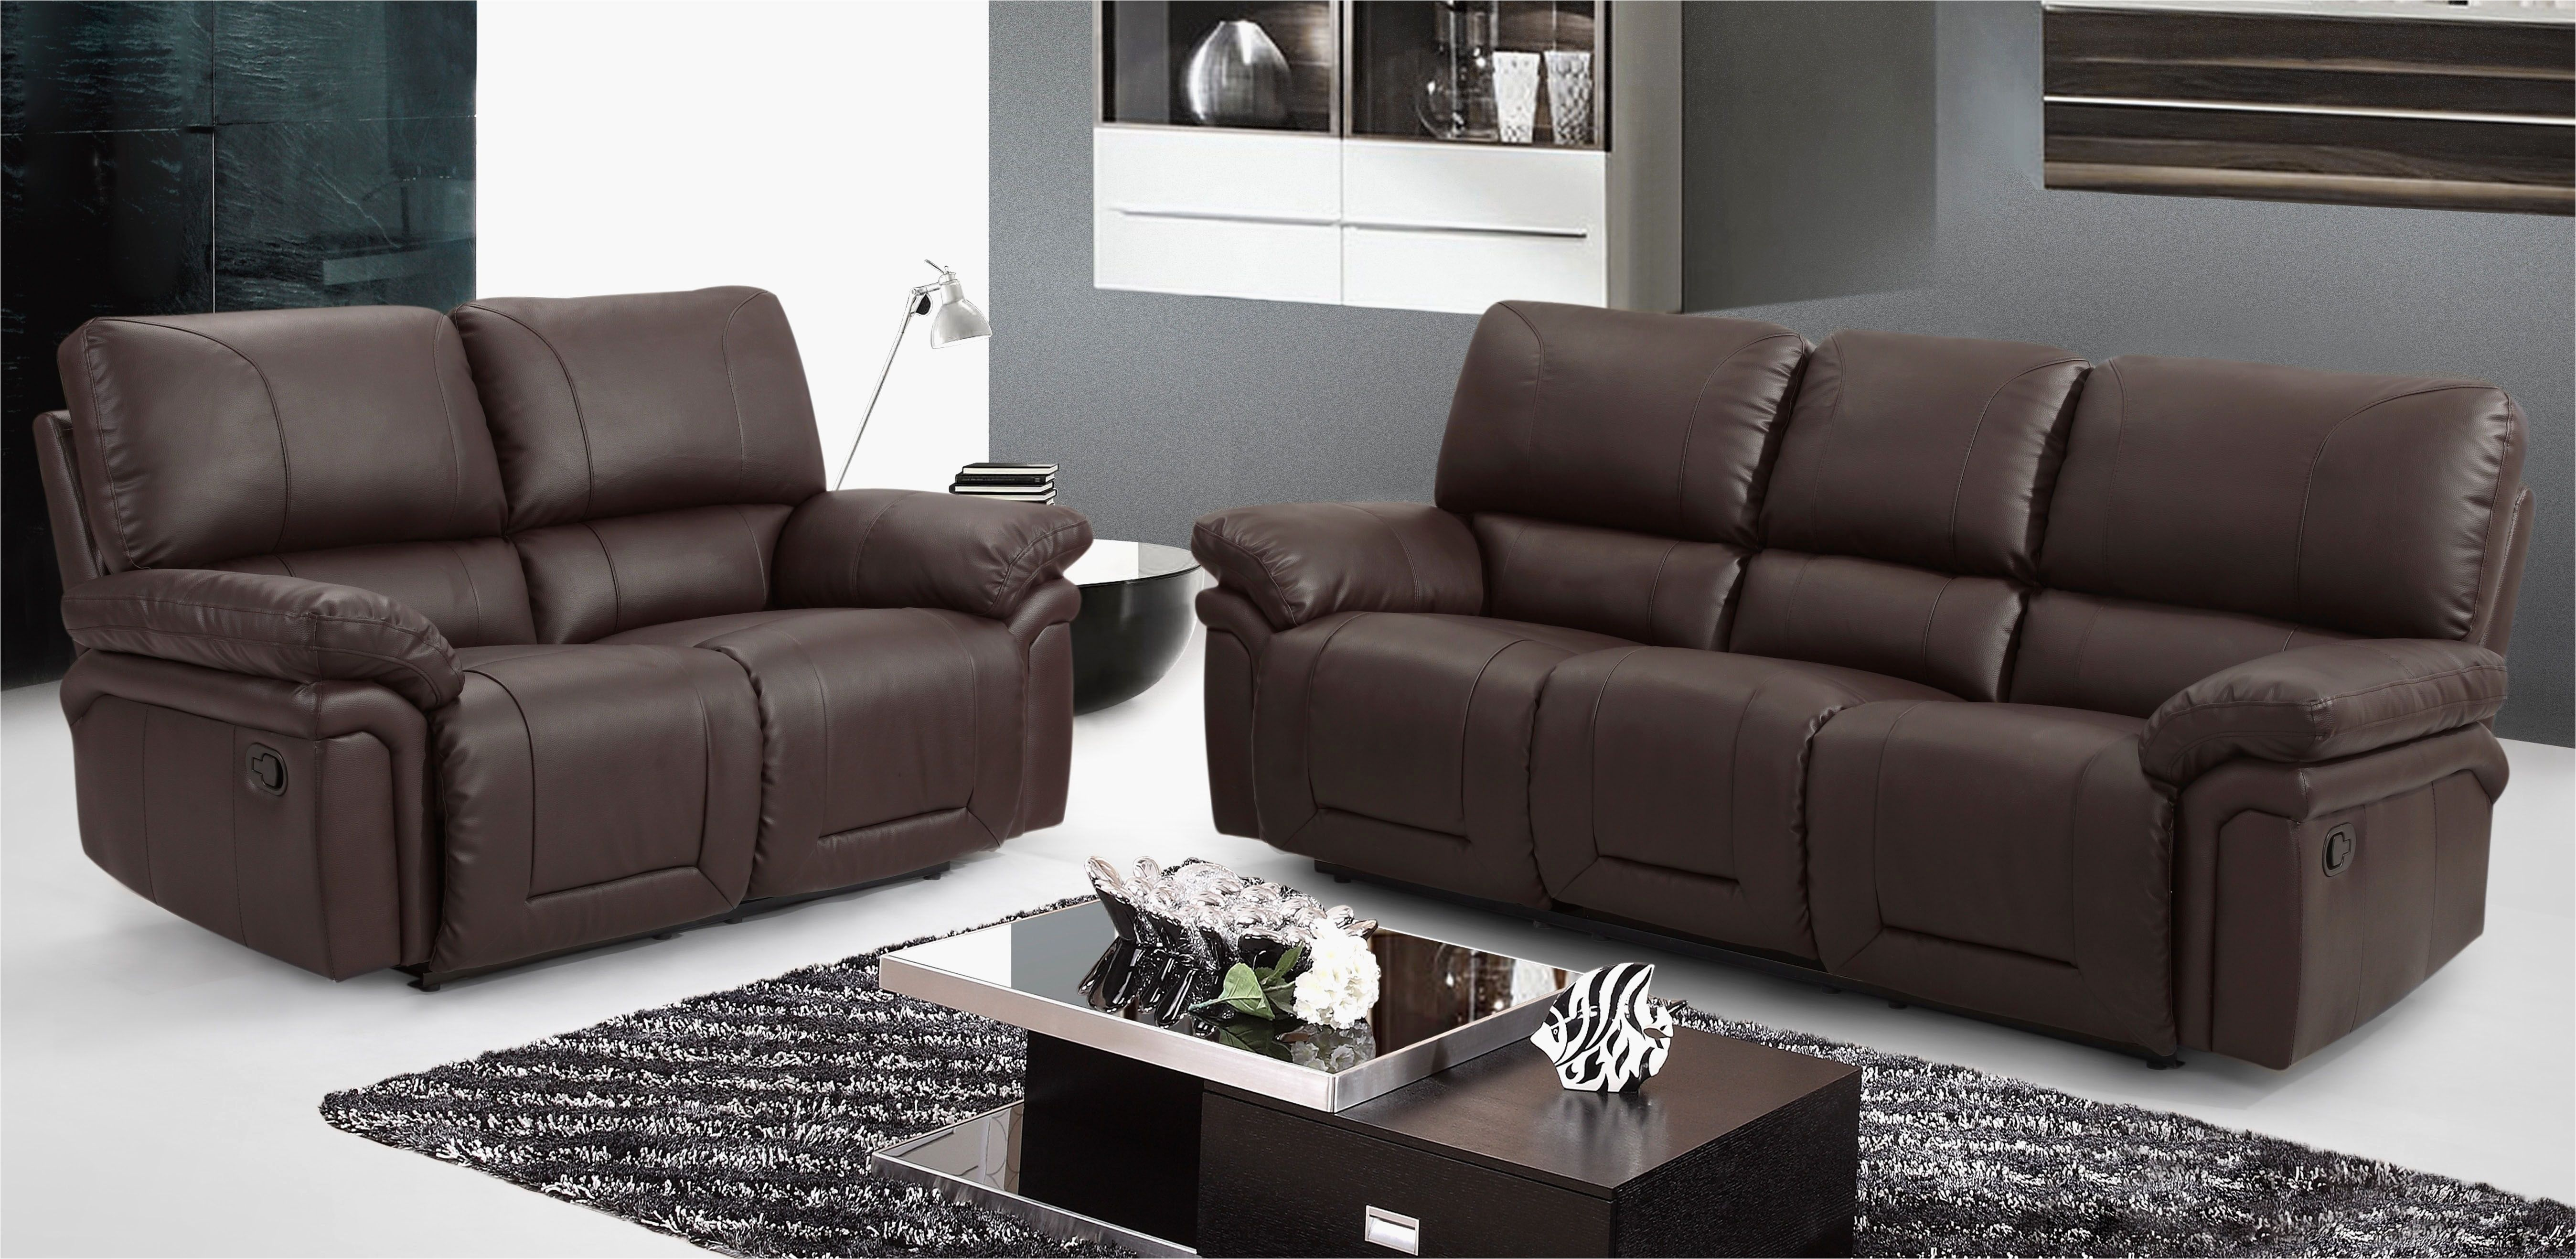 Top 10 Buy Leather Sofas Comparison Leather living room